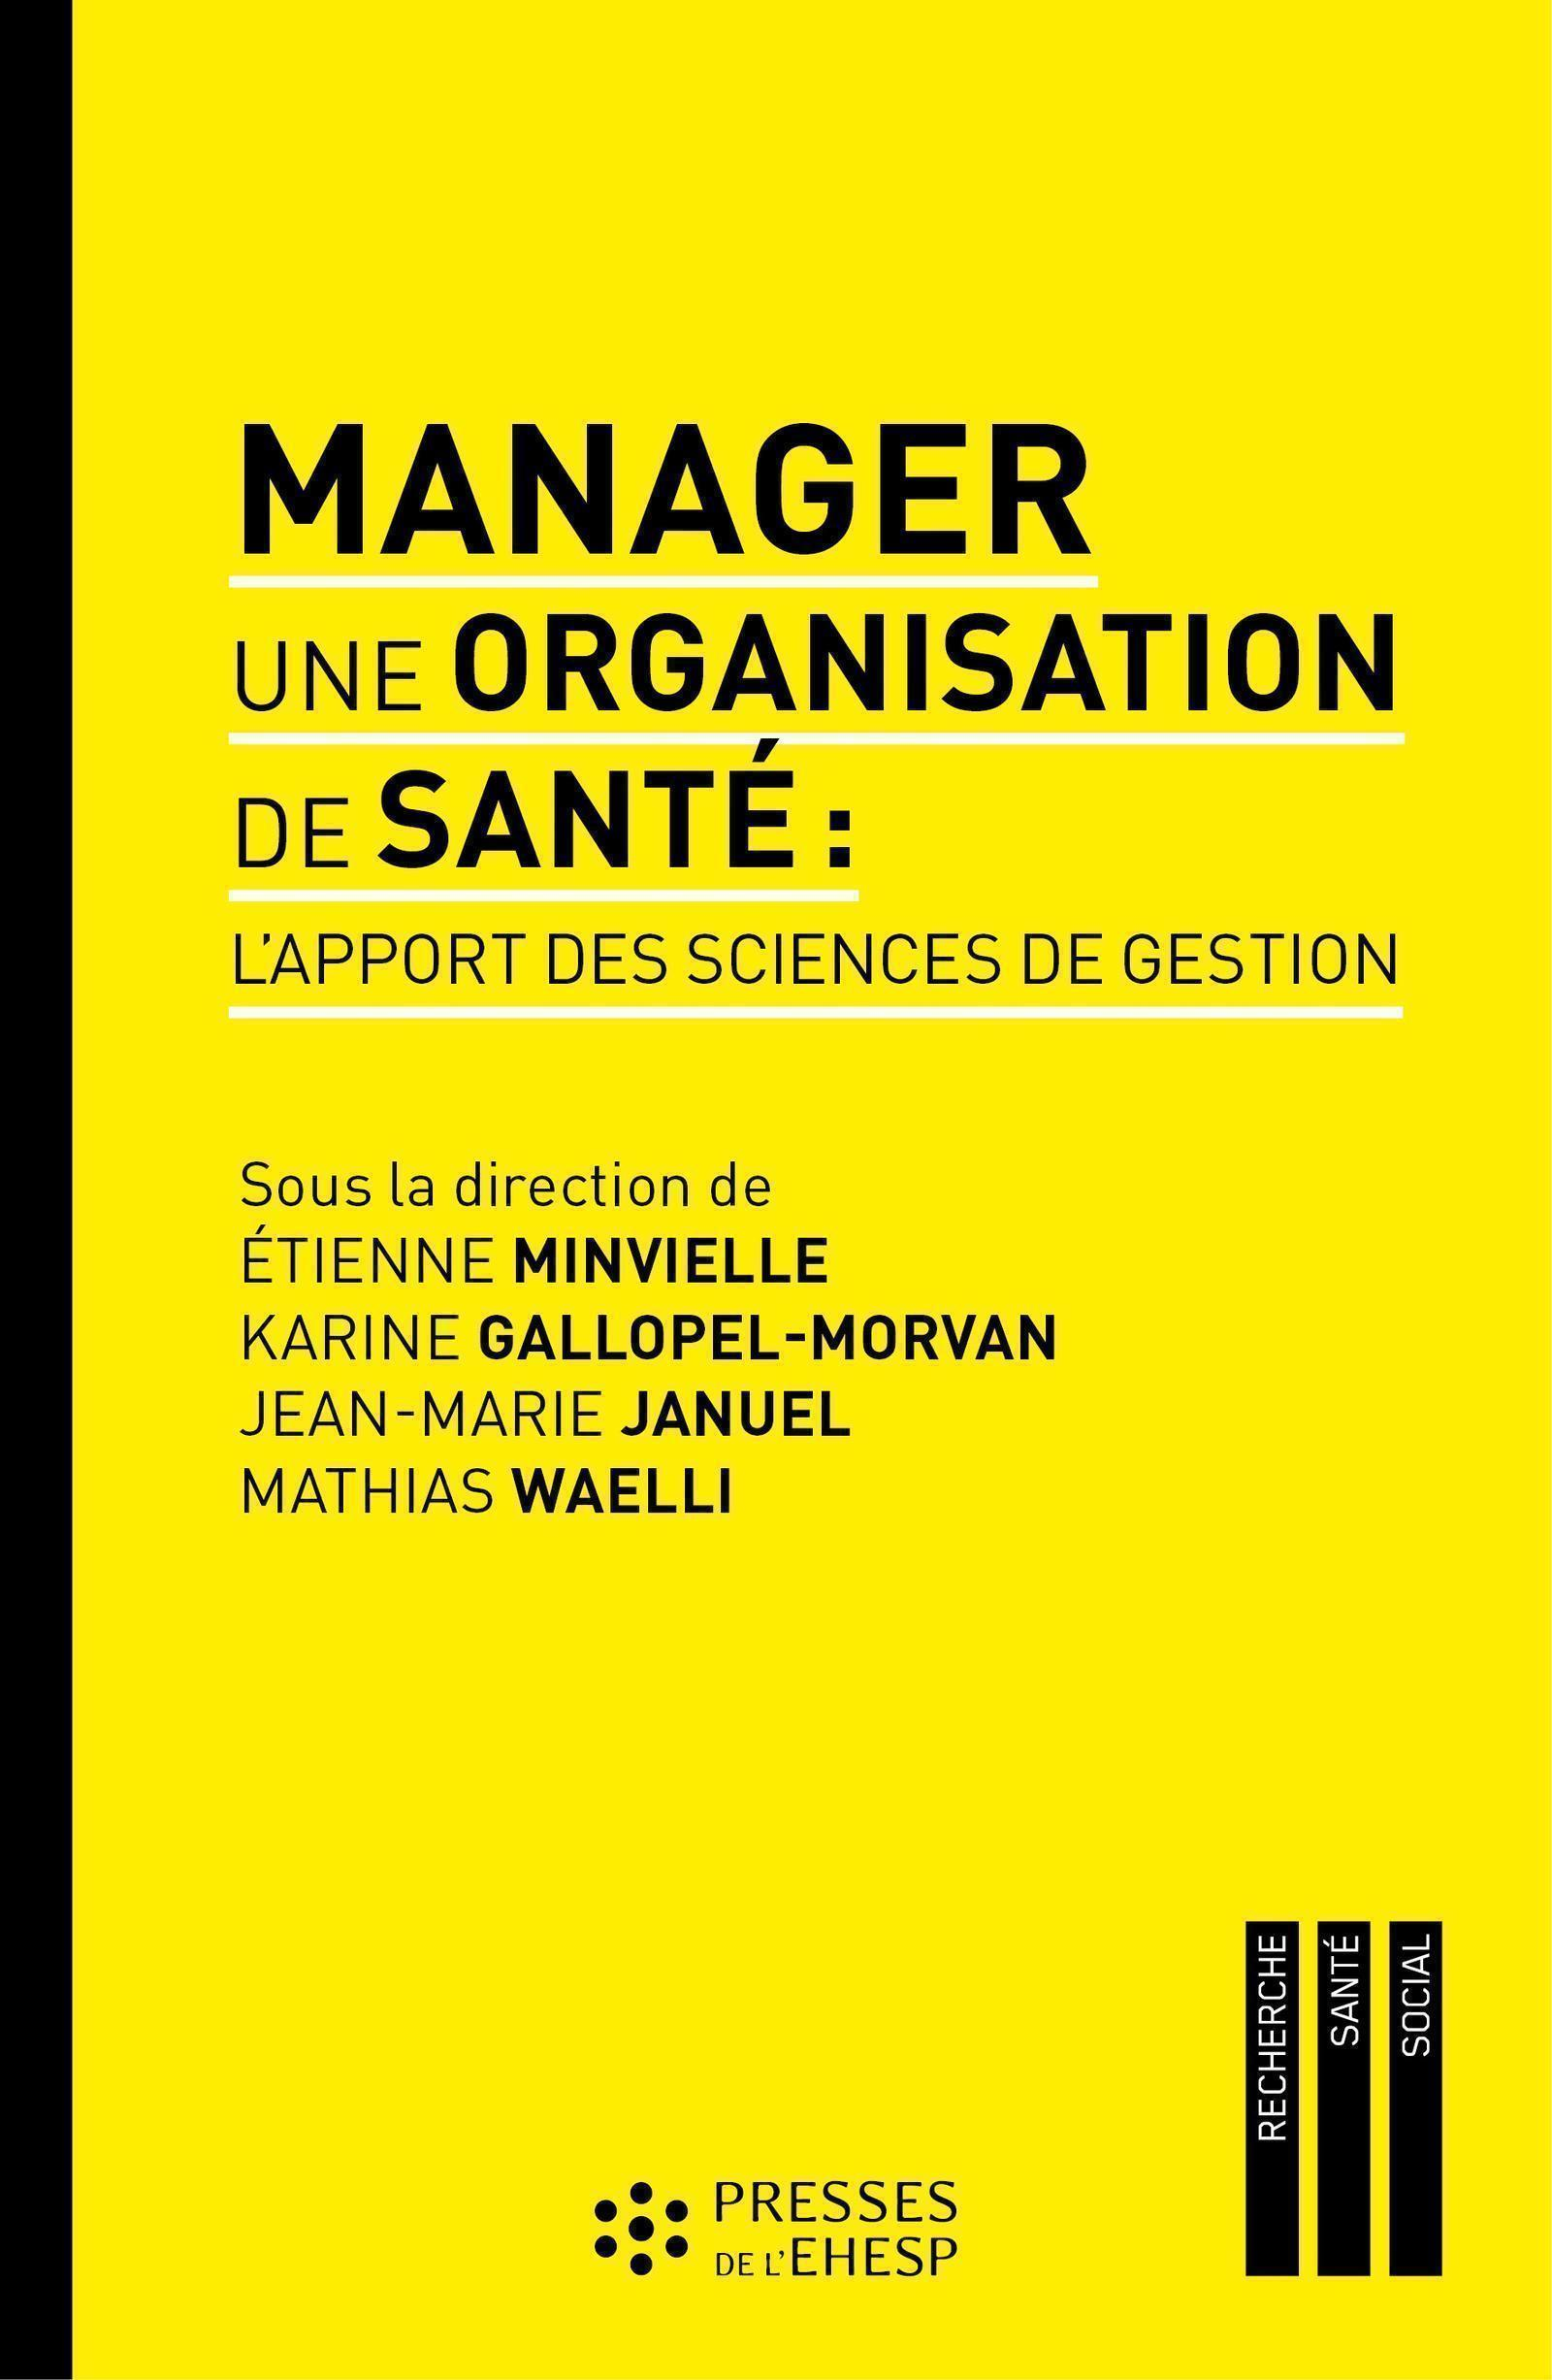 L APPORT DES SCIENCES DE GESTION AUX MANAGERS DE SANTE